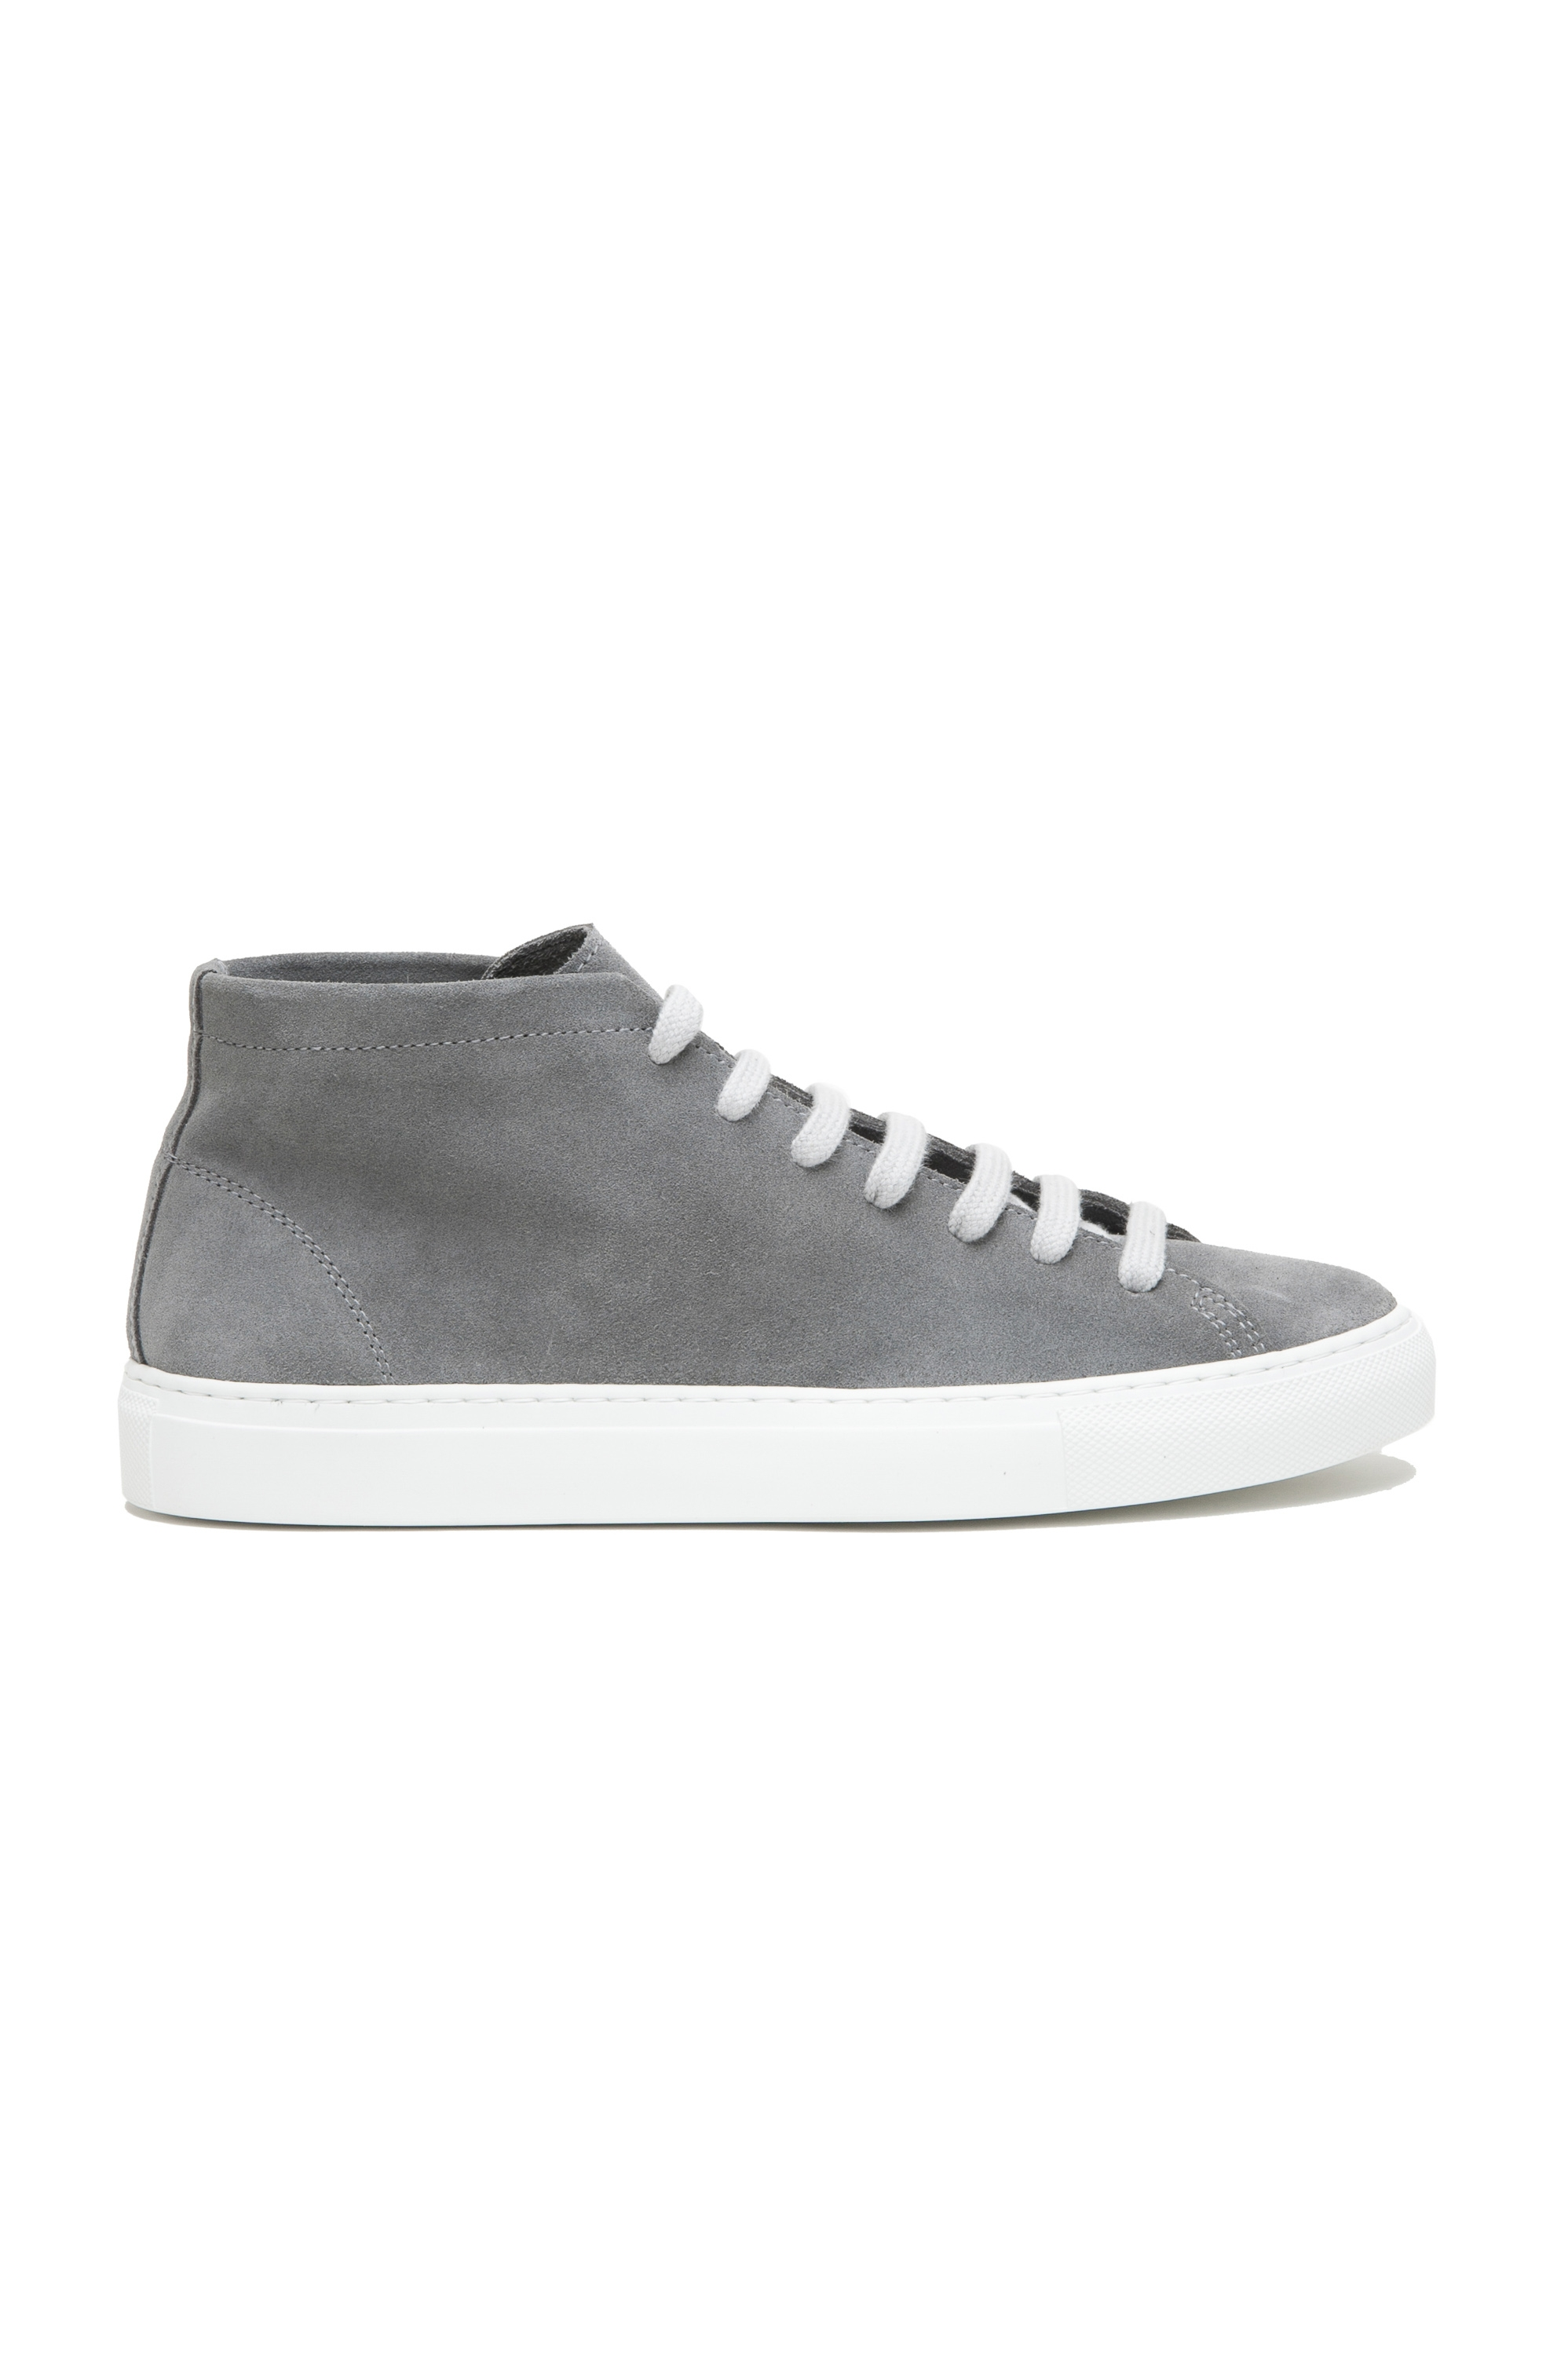 SBU 02969_2020AW Grey mid top lace up sneakers in suede leather 01